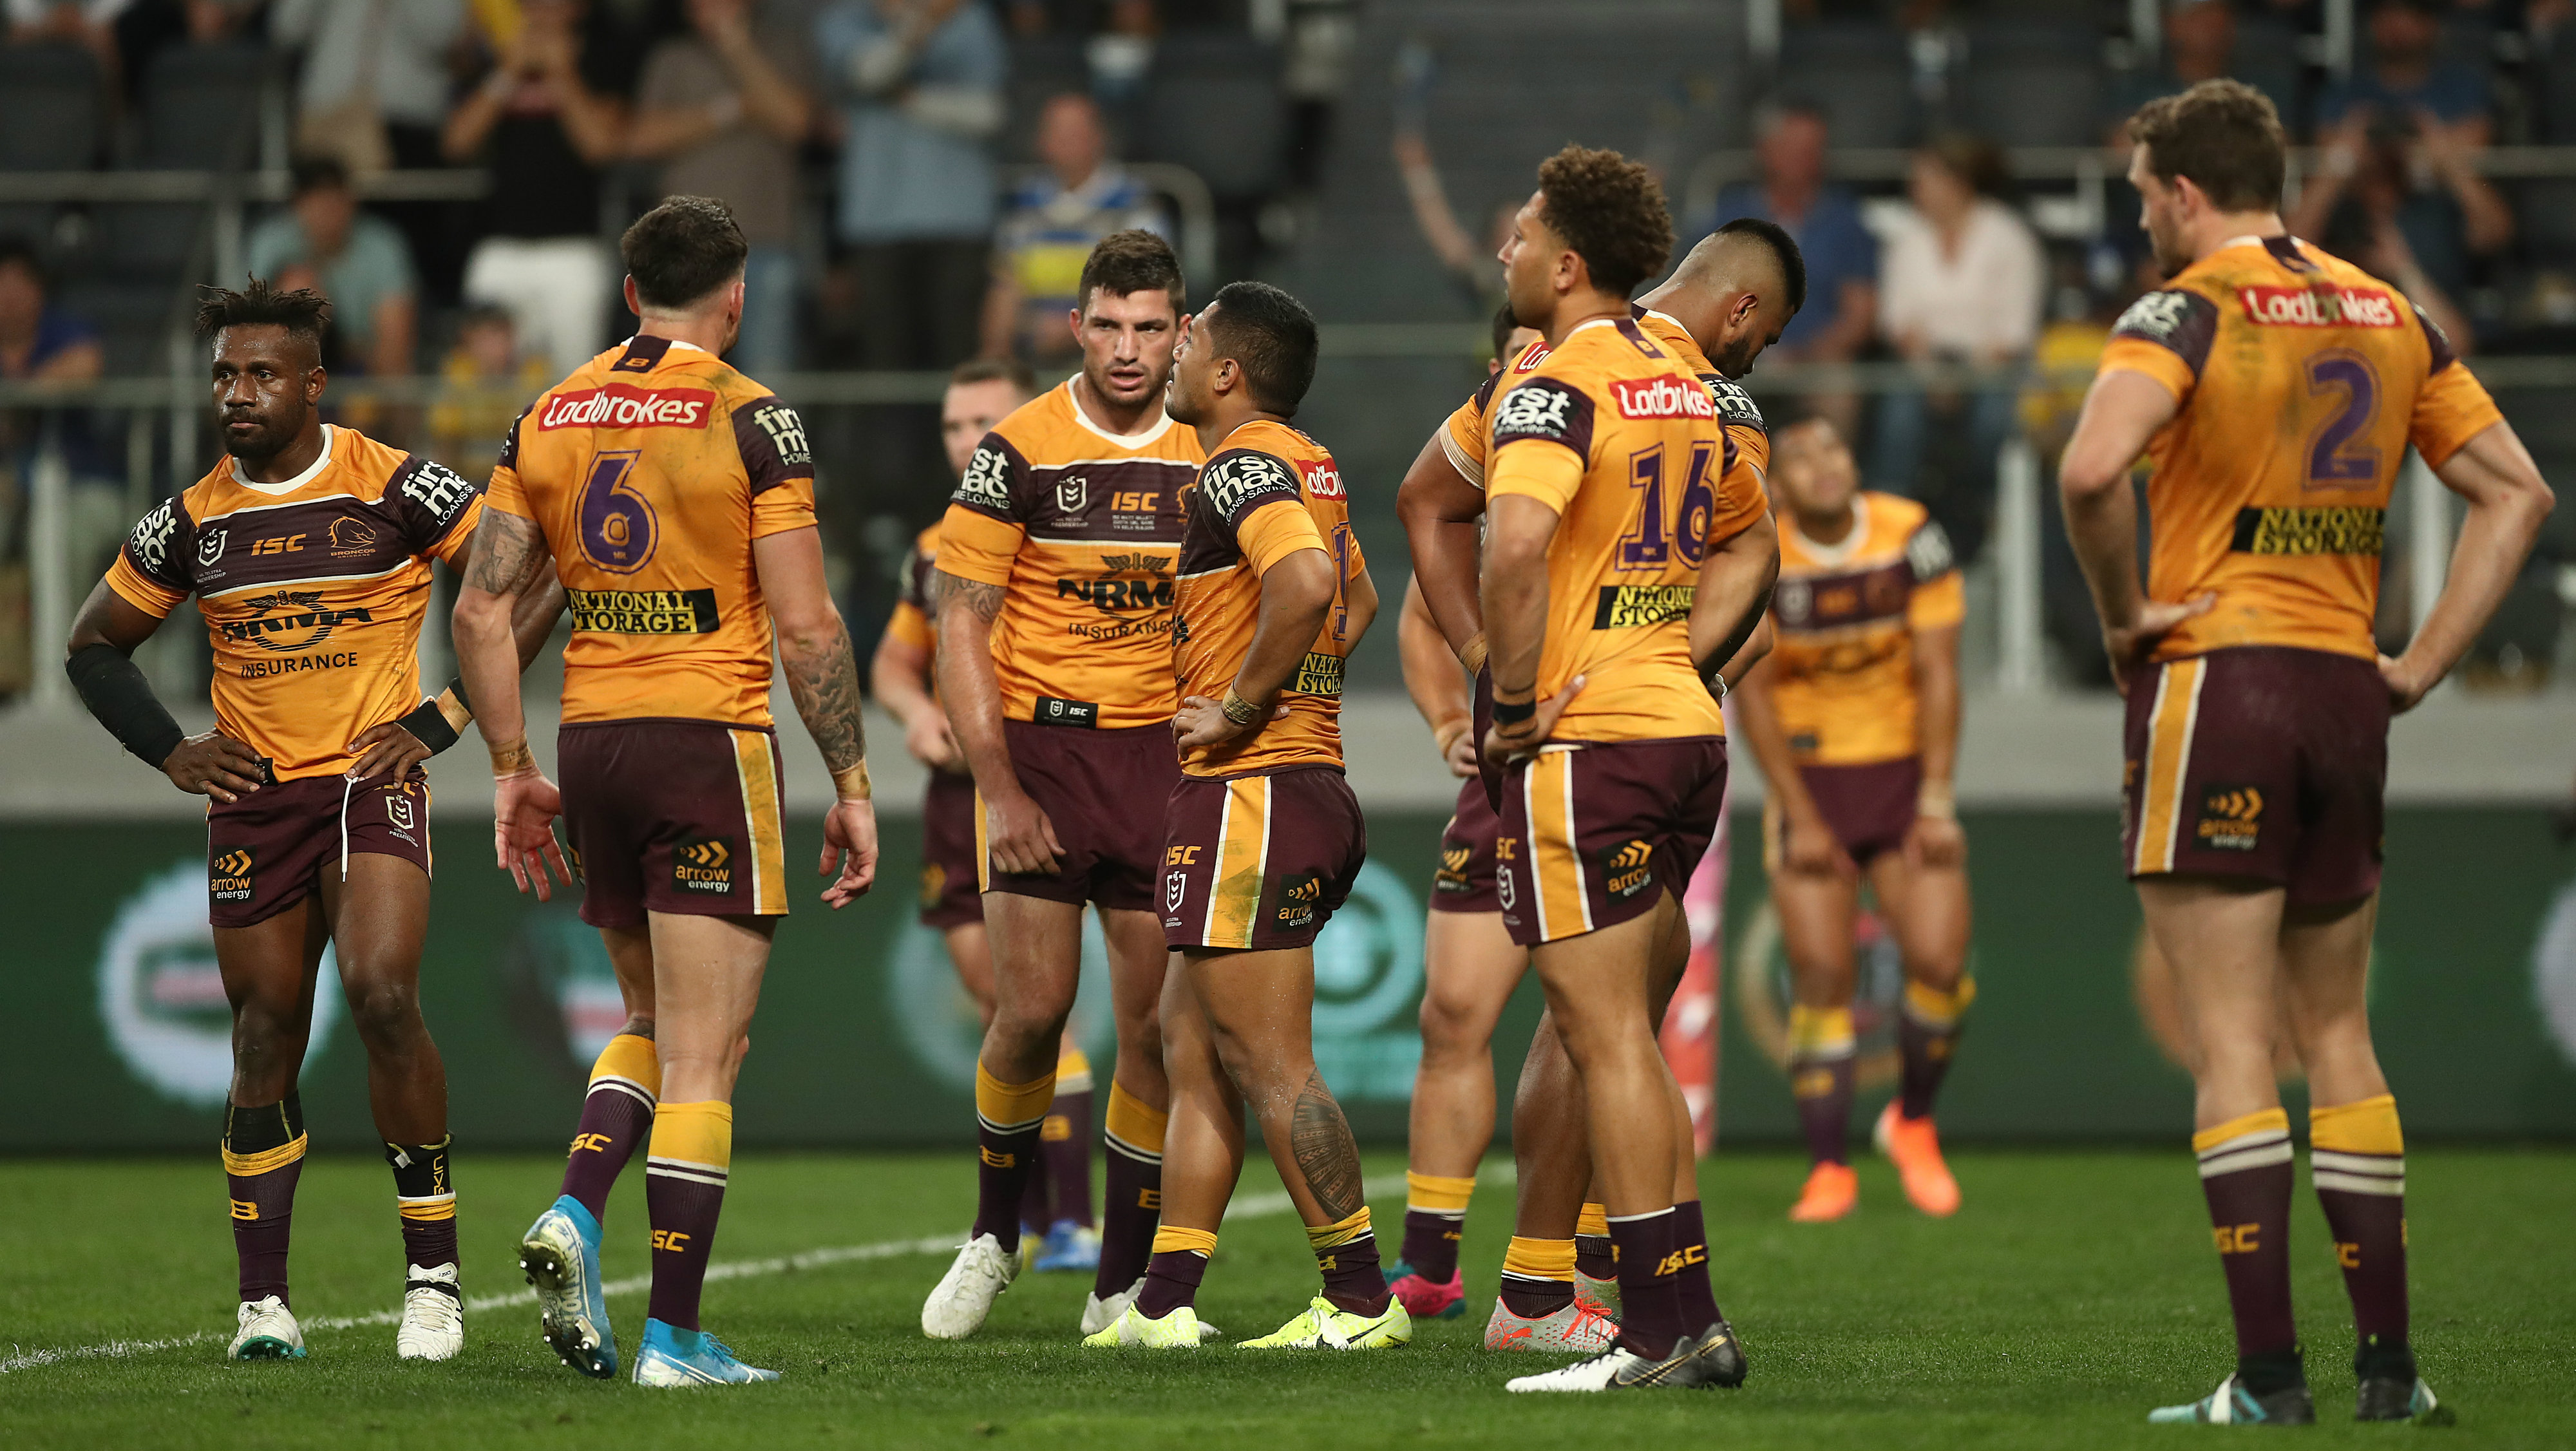 Brisbane Broncos release statement confirming pokies session before 58-0 loss